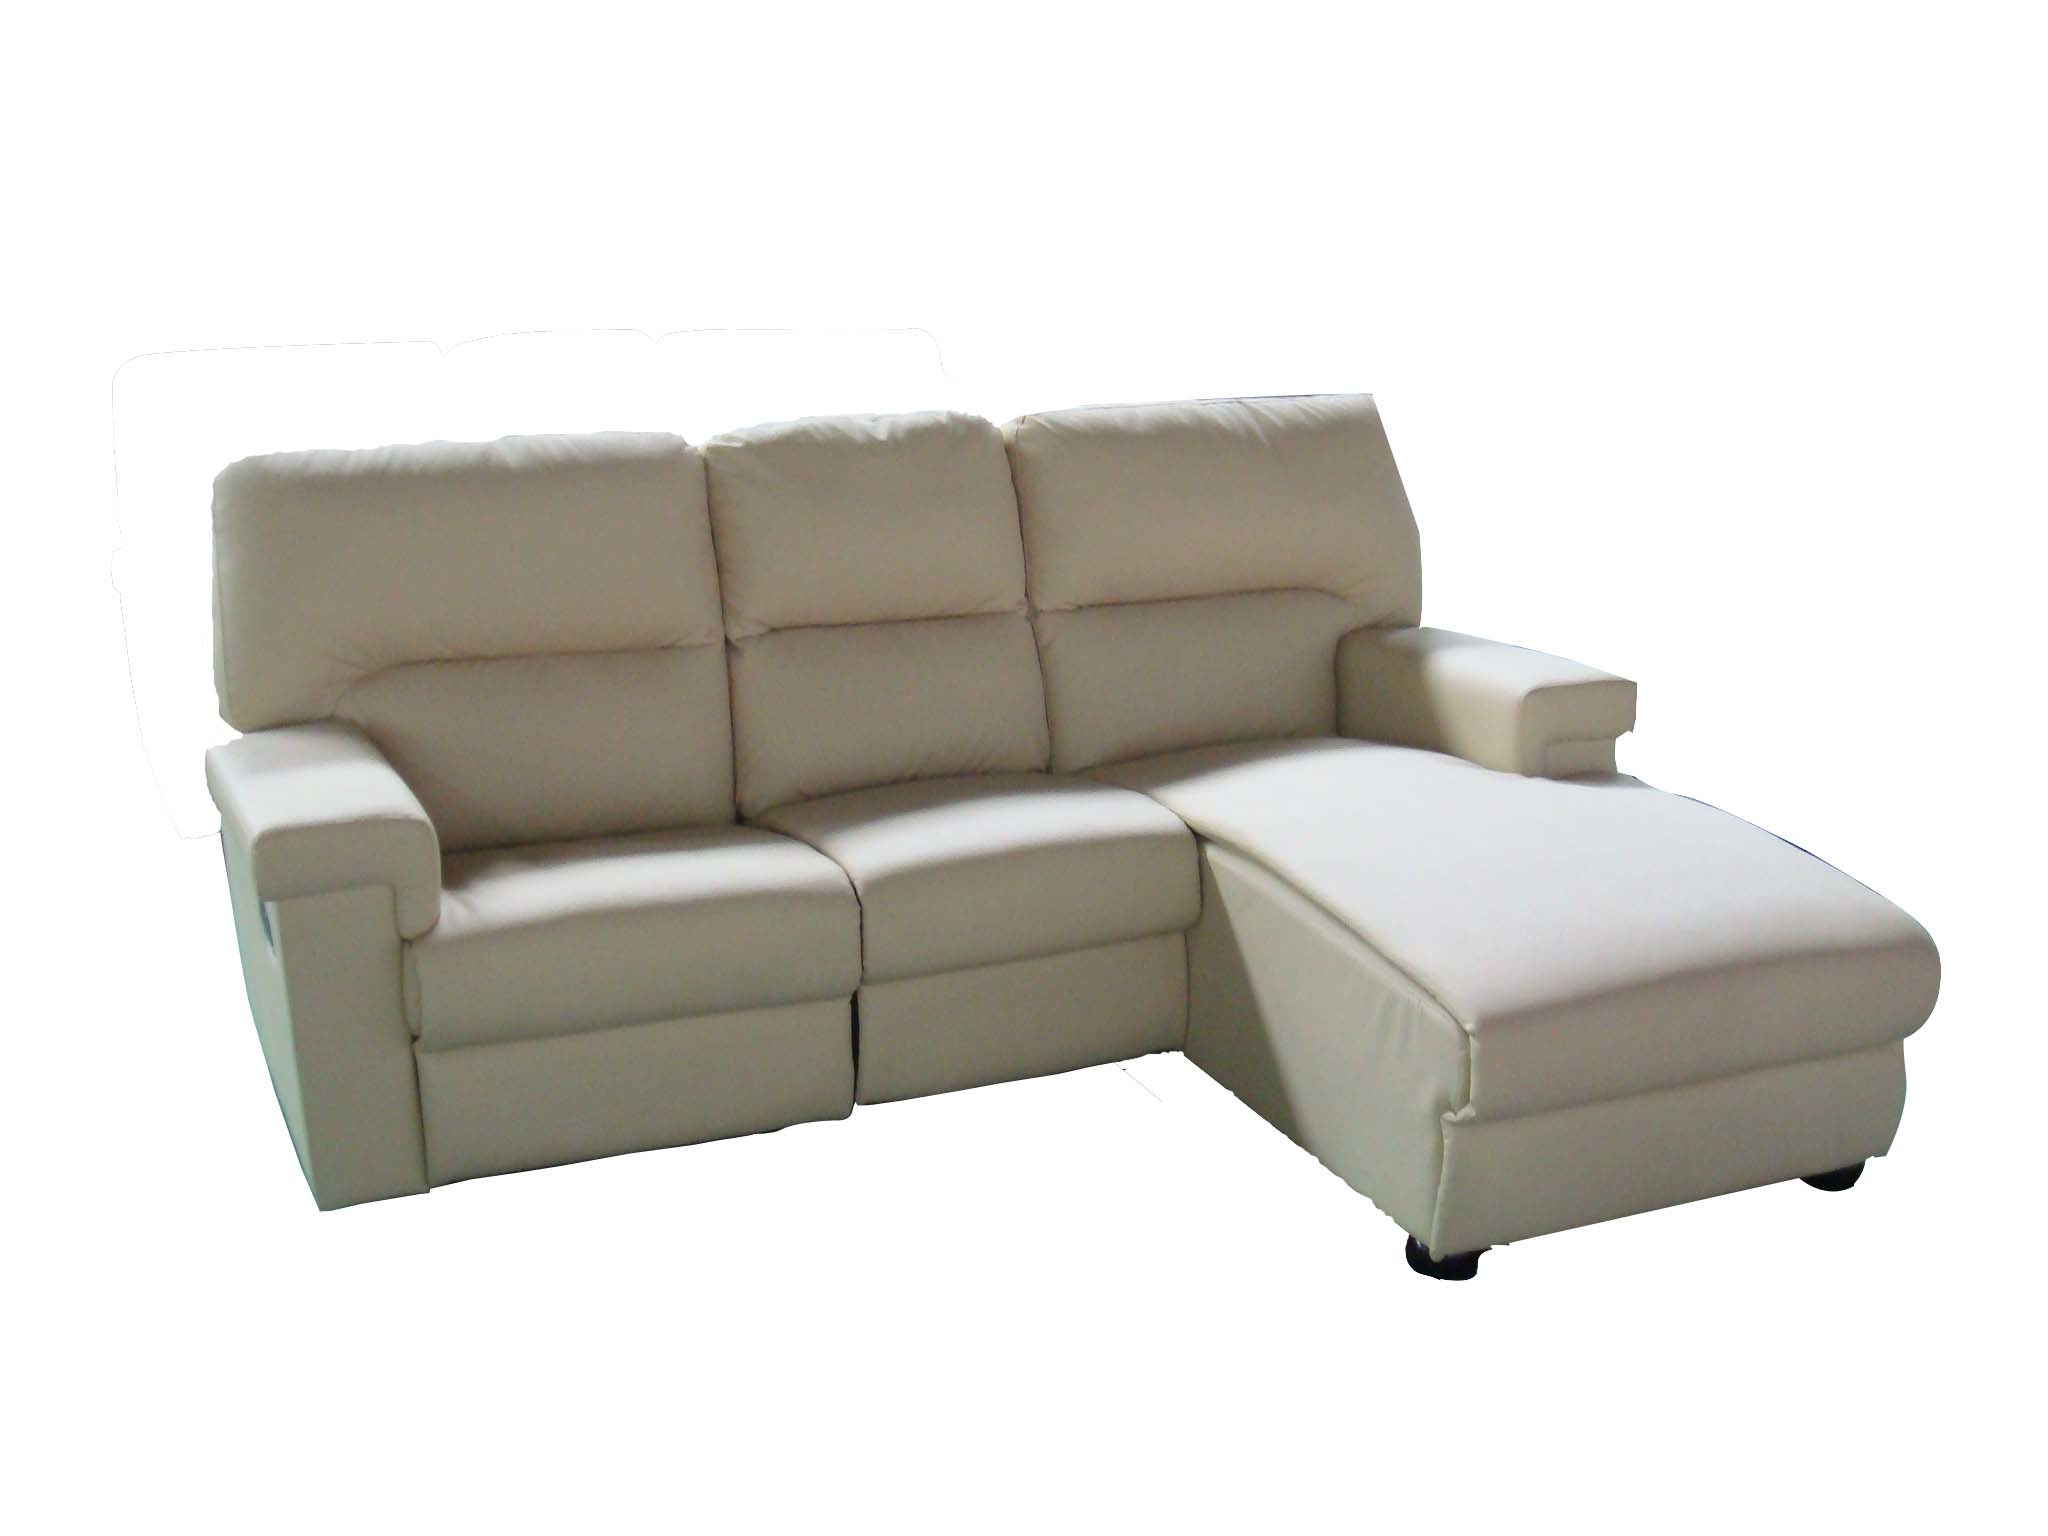 Designer sectional sofa sofa design for Modern sectional sofas